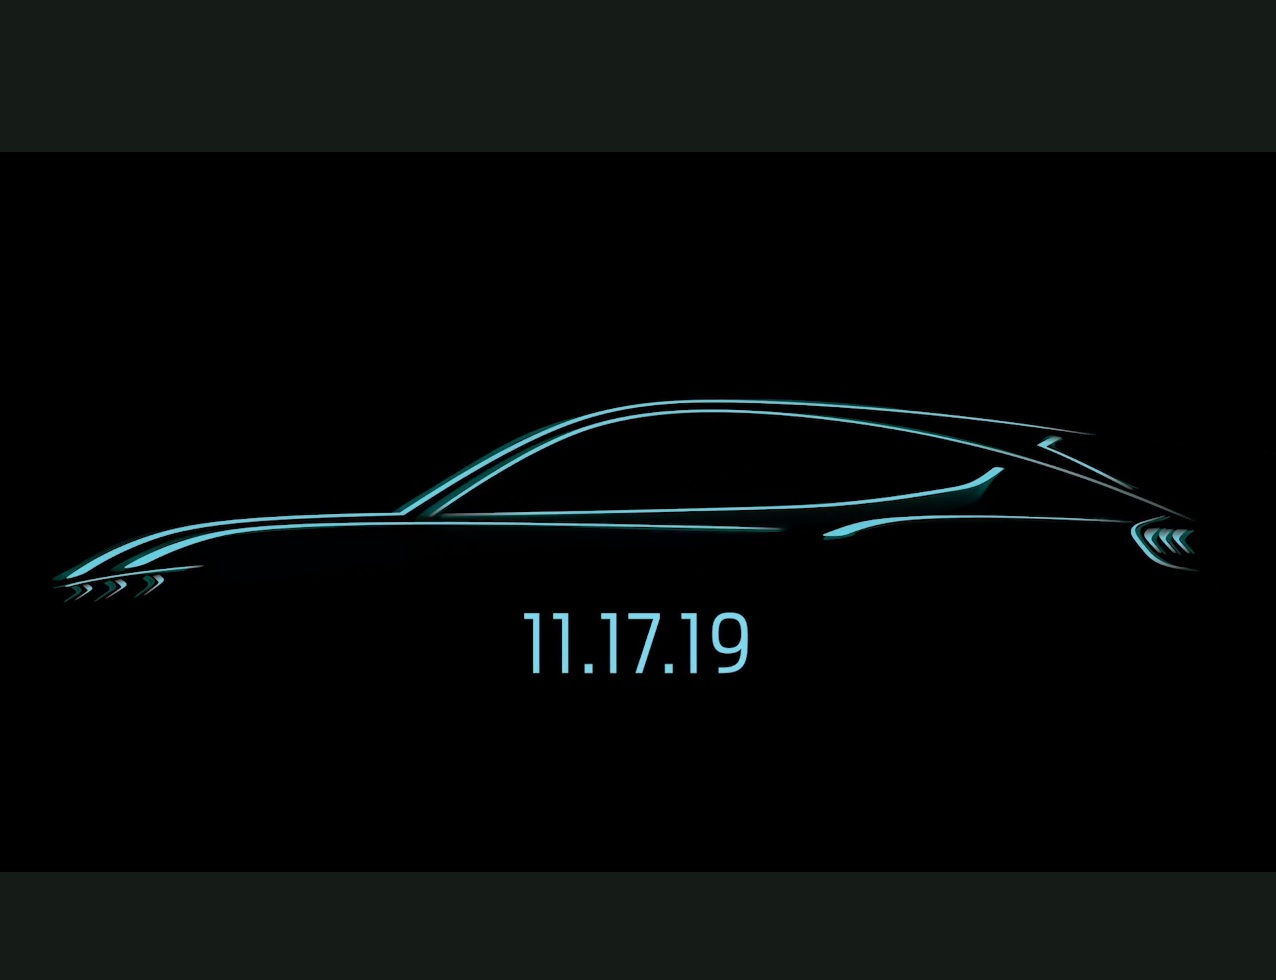 Teaser vid reveals the premiere date of Ford's Mustang-shaped EV